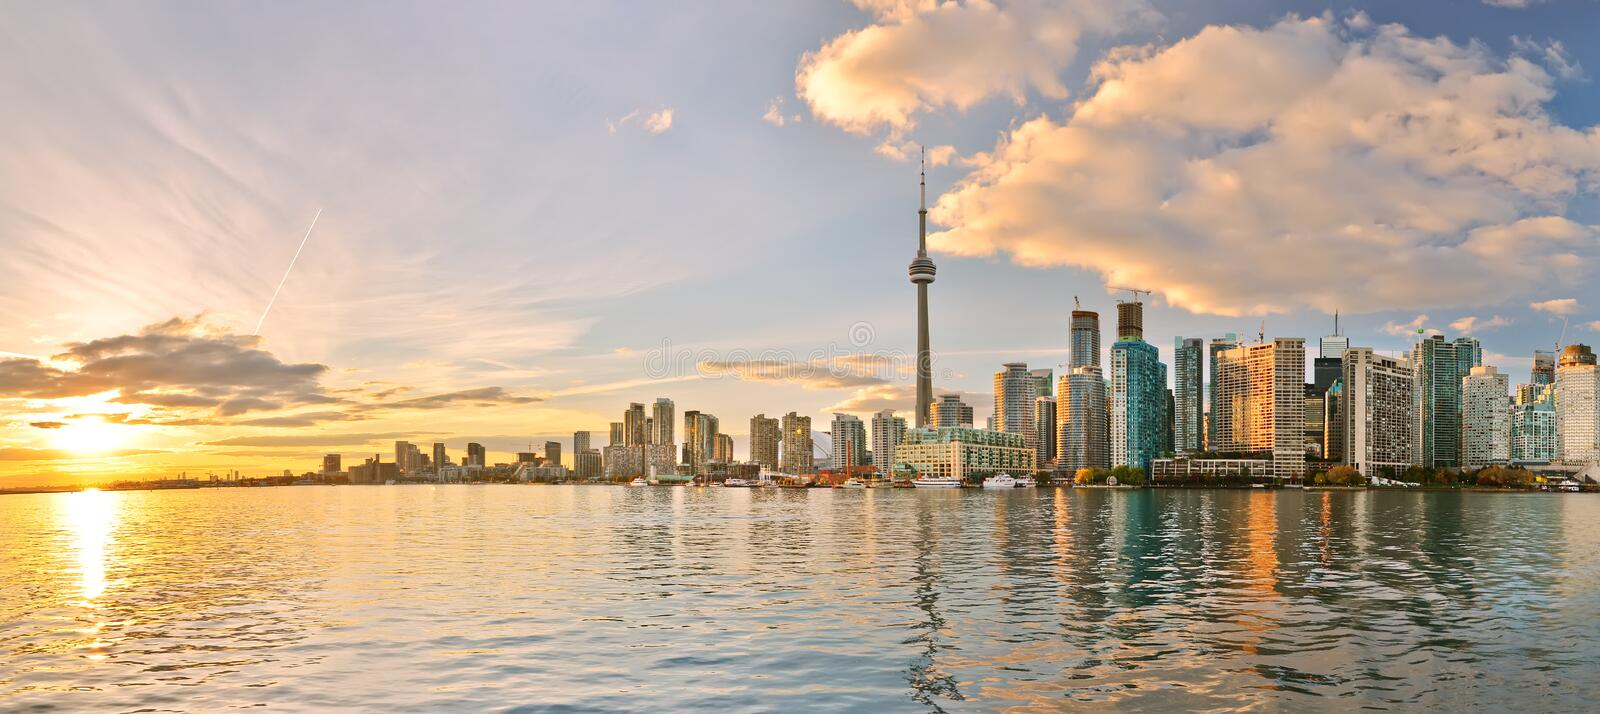 Toronto skyline at sunset in Ontario, Canada. royalty free stock photography